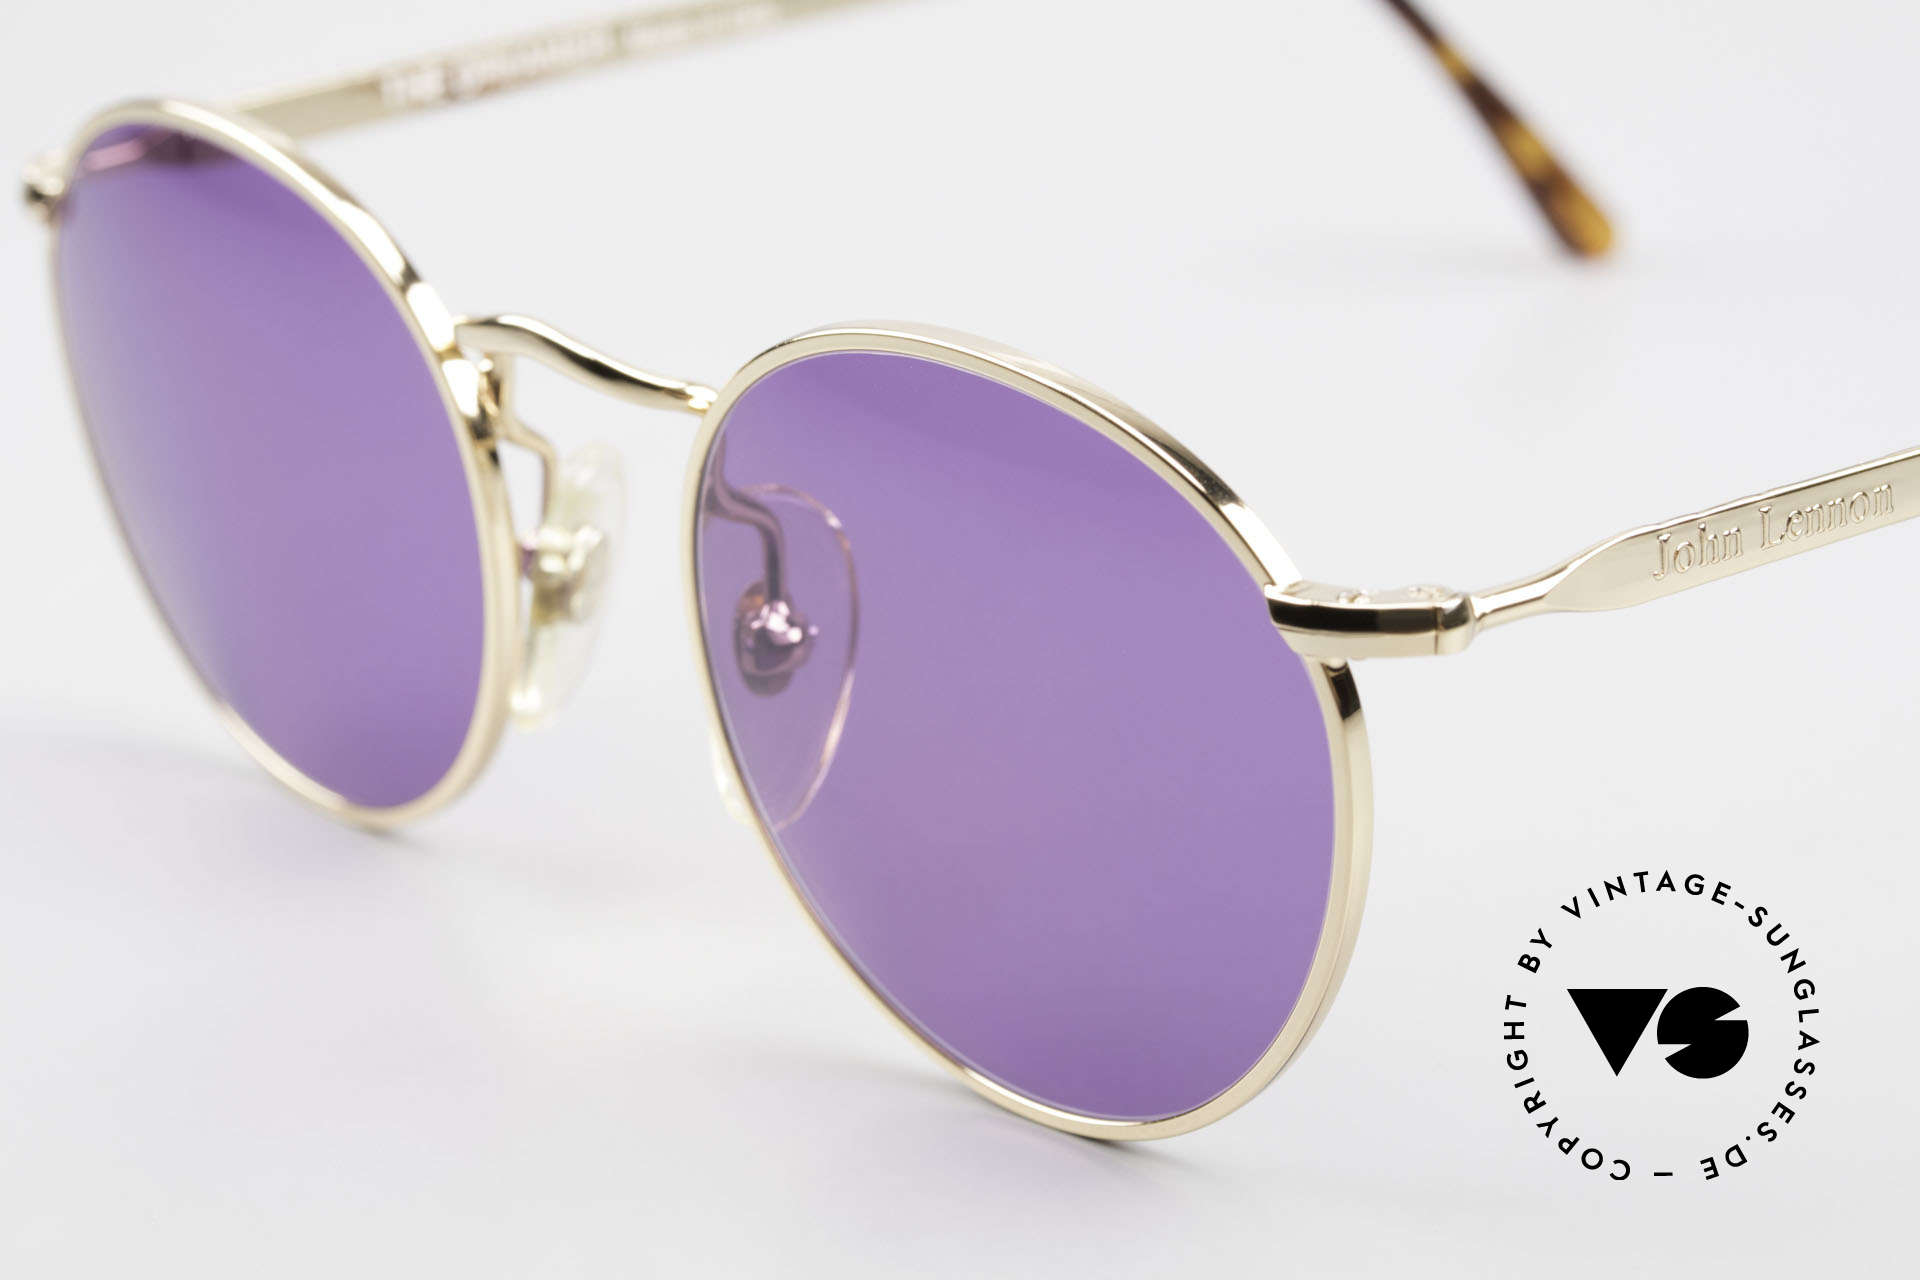 John Lennon - The Dreamer Extra Small Panto Sunglasses, purple sun lenses: fancy and eye-catching but 100% UV, Made for Men and Women